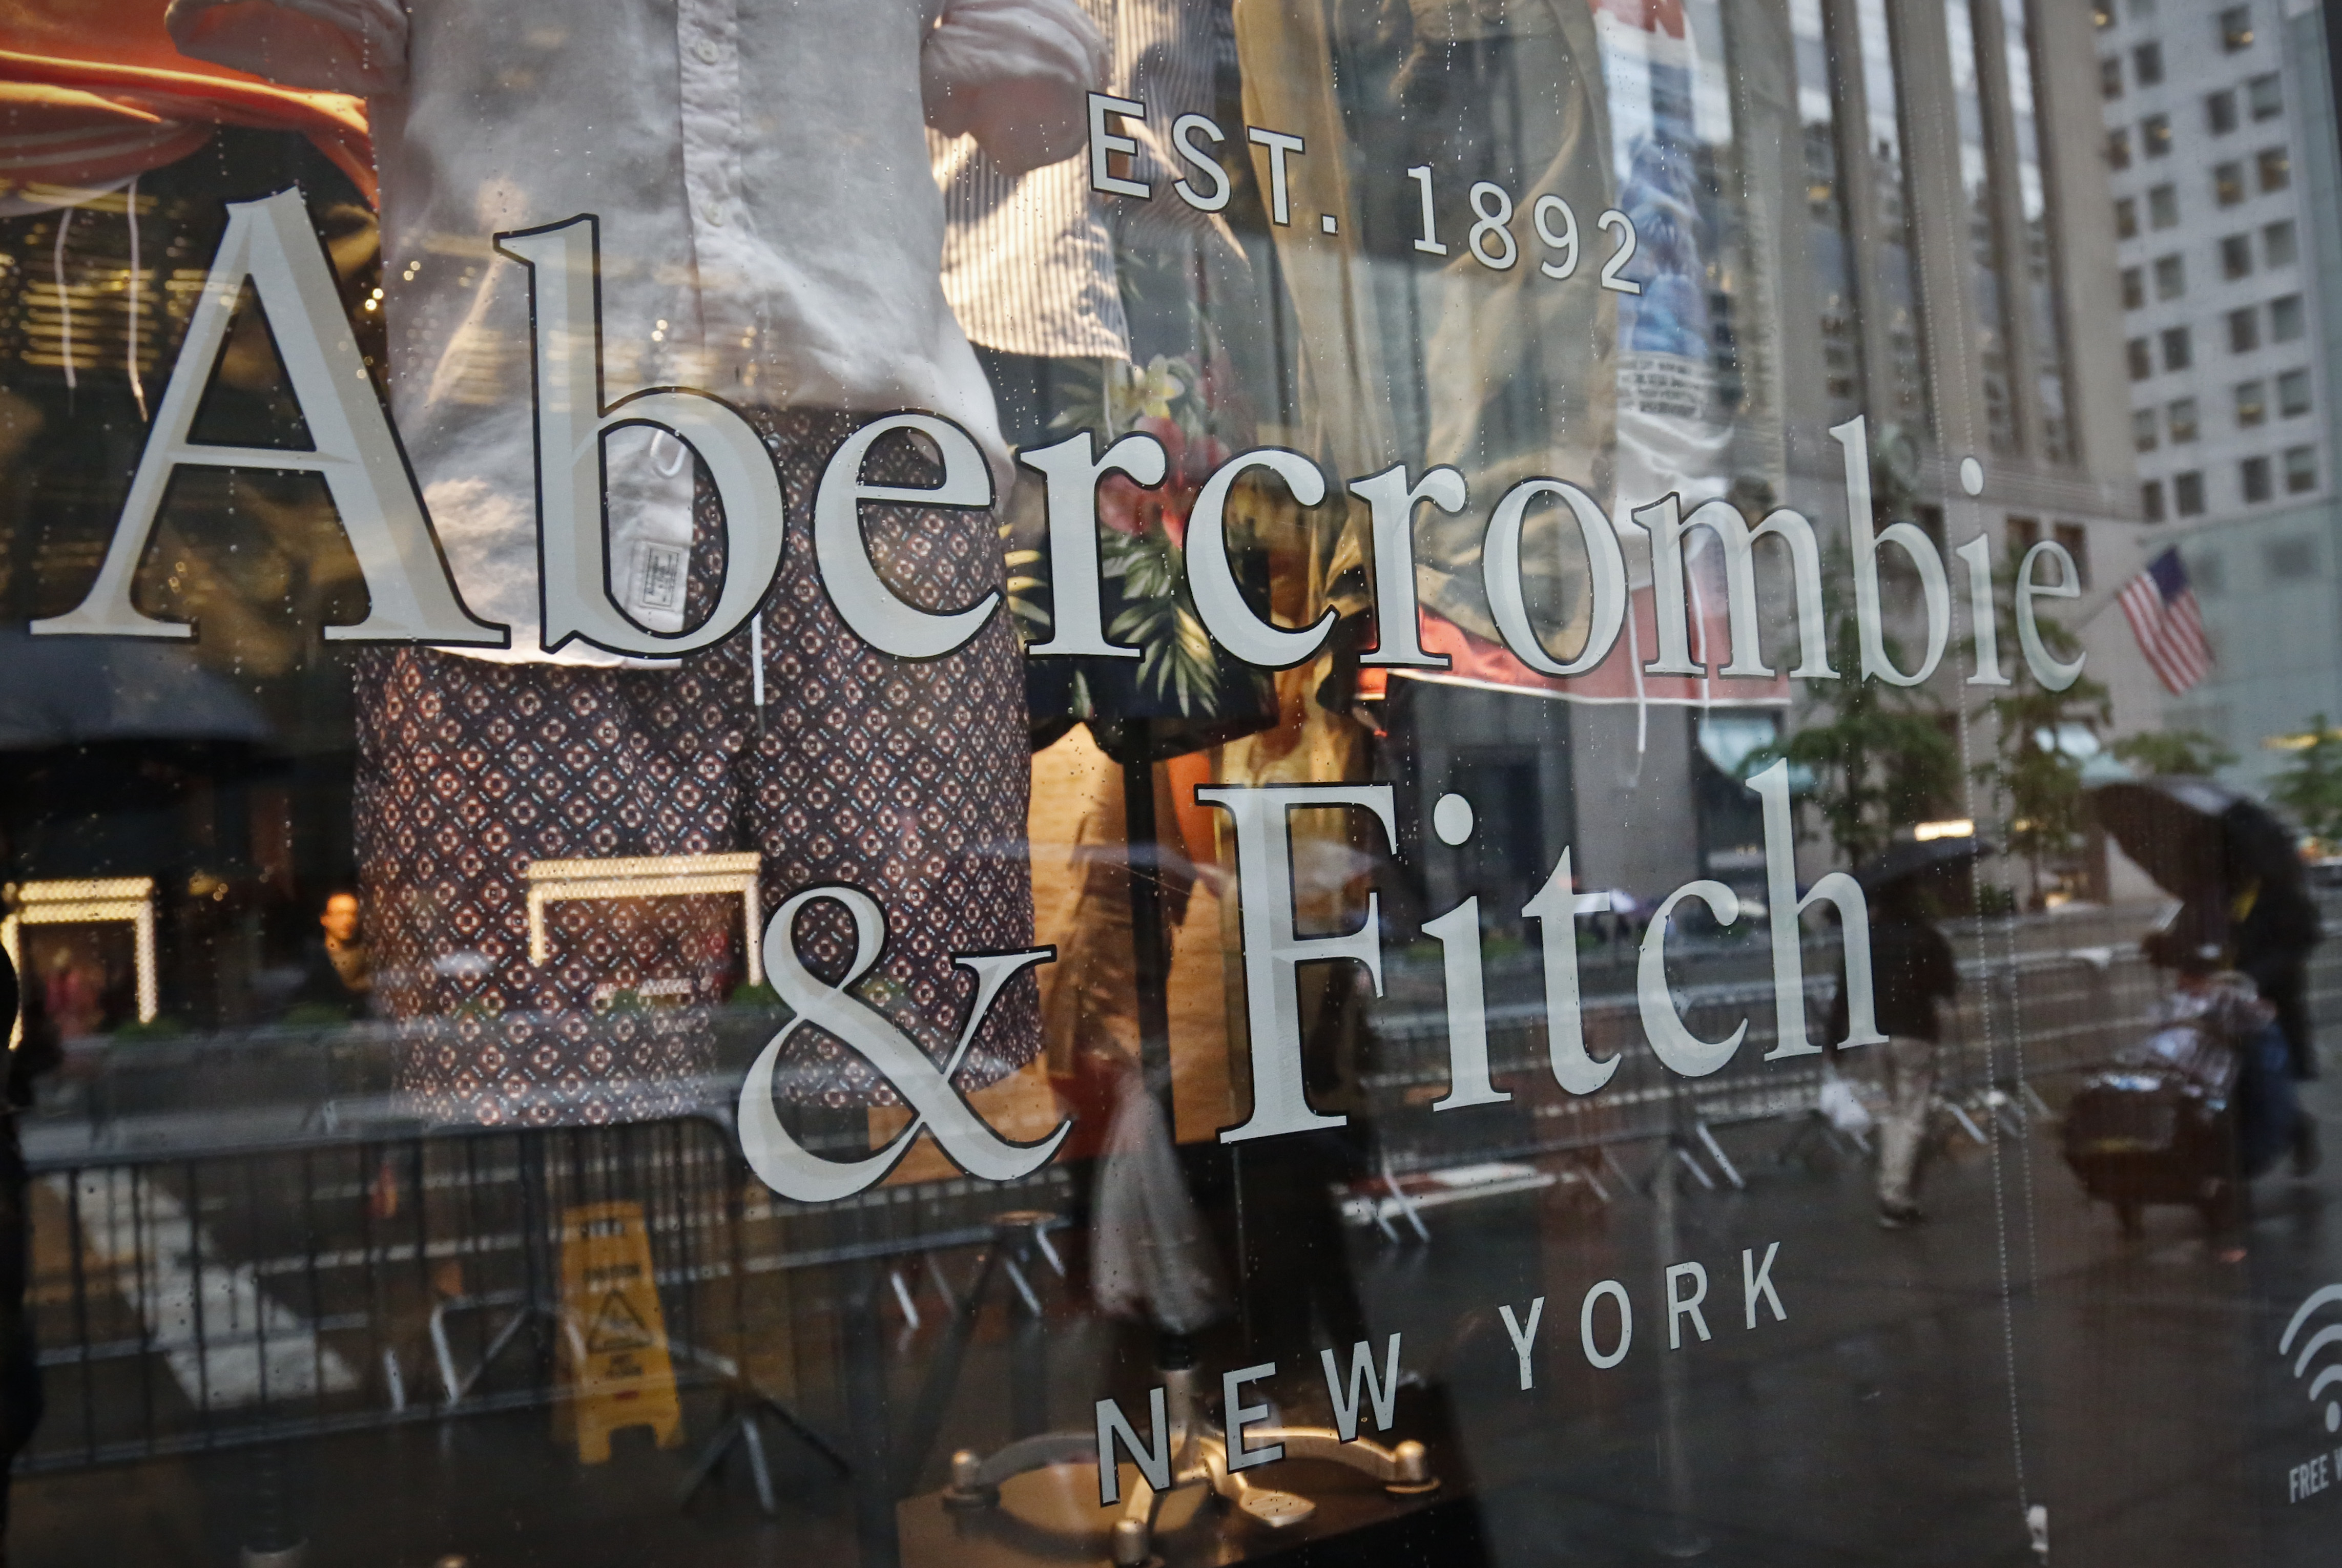 Copyright 2017 The Associated Press. All rights reserved. This material may not be published, broadcast, rewritten or redistributed without permission.Mandatory Credit: Photo by AP/REX/Shutterstock (8840628b)A store window reflects a street scene at an Abercrombie & Fitch store on New York's Fifth Avenue. Abercrombie & Fitch Company reports earnings, Thursday, May 25, 2017Earns Abercrombie Fitch, New York, USA - 22 May 2017